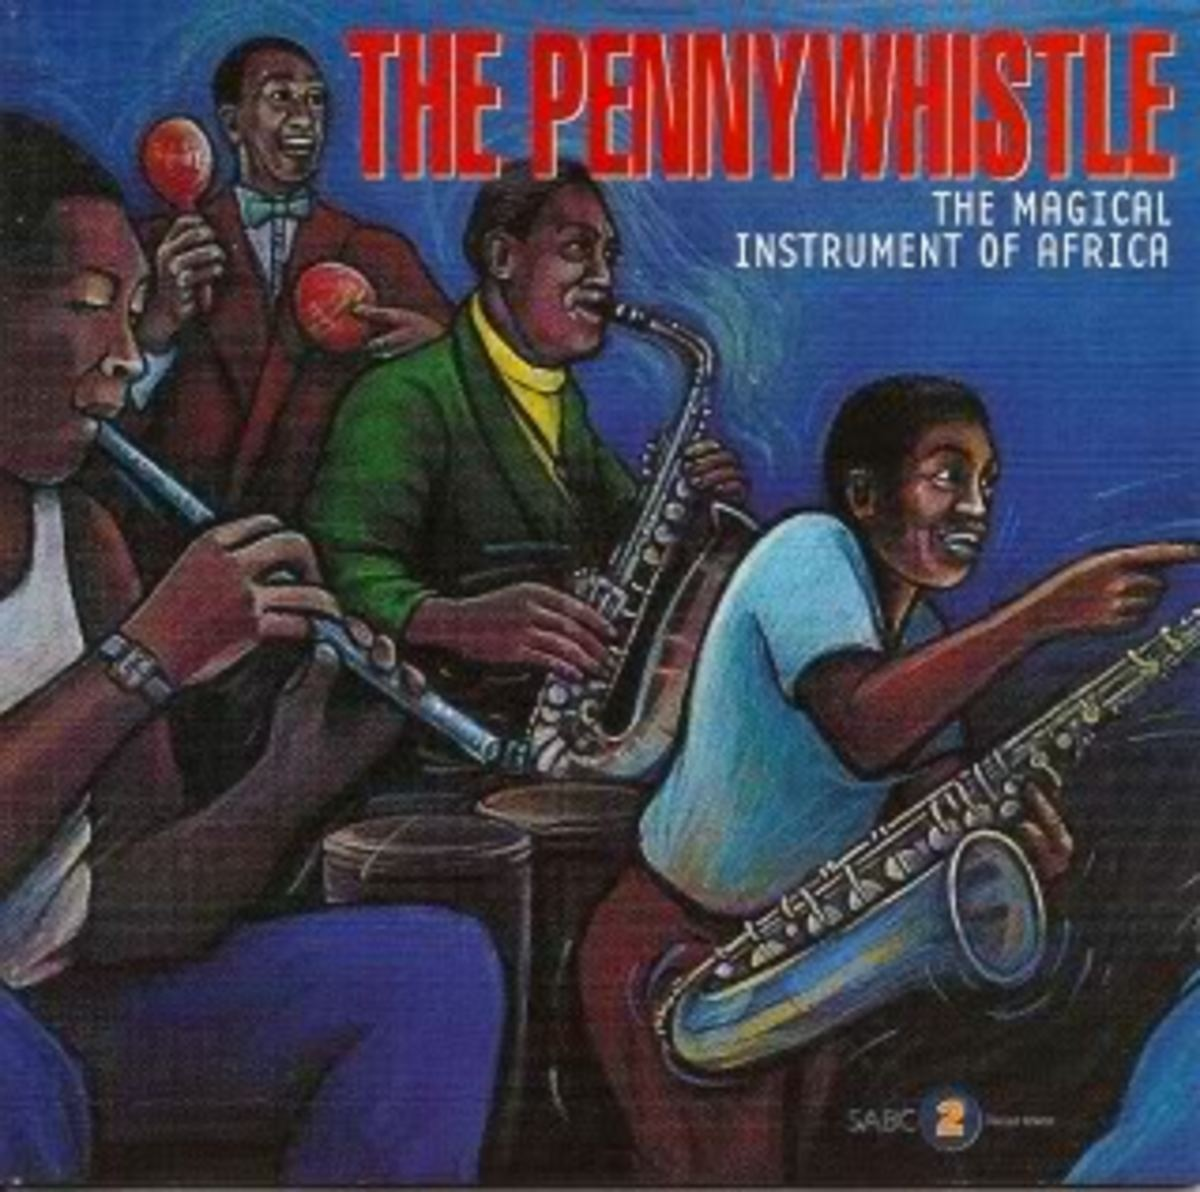 The Era of the Pennywhistle captured artfully